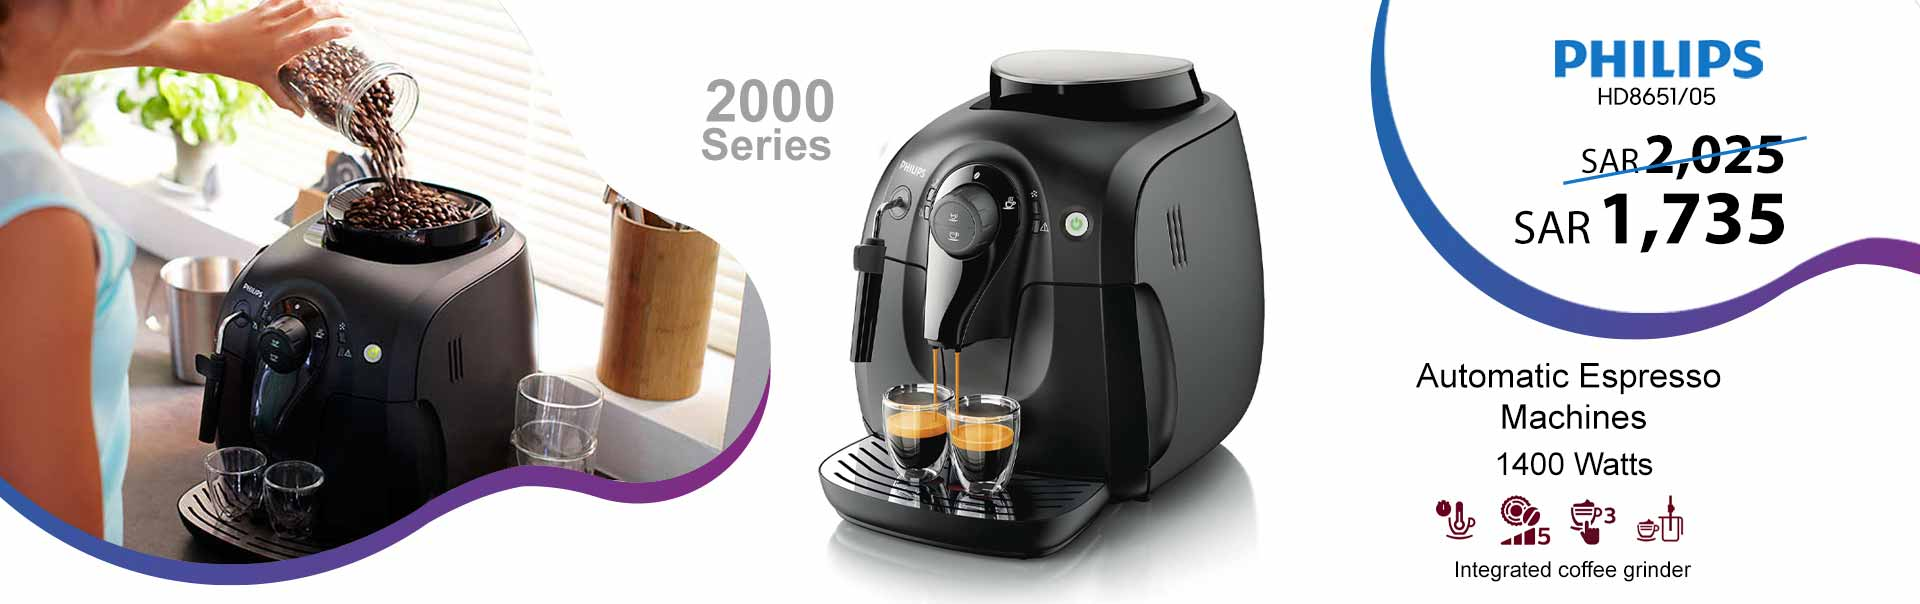 Philips 2000 Series One Touch Bean-to-Cup Espresso